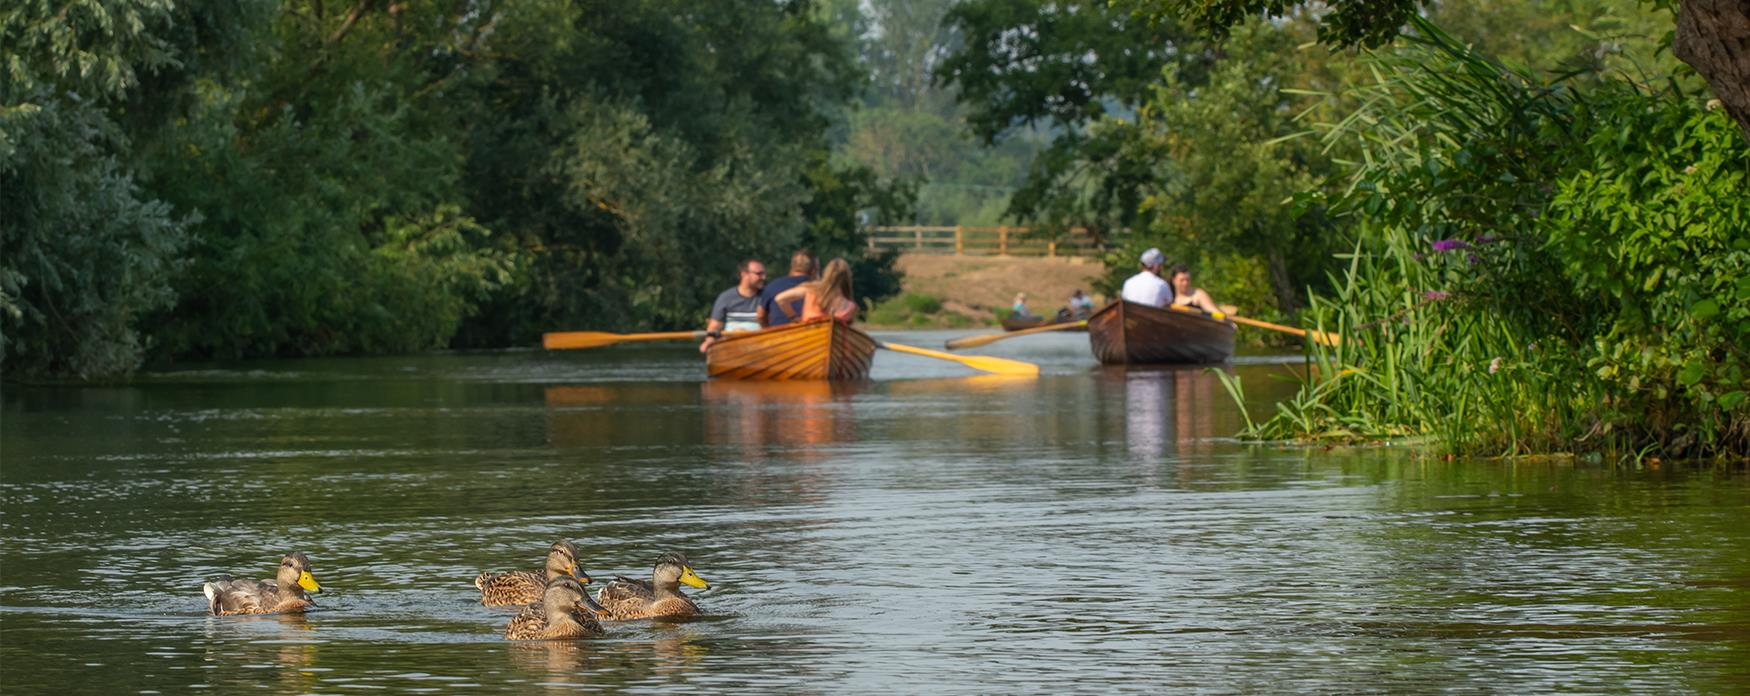 Dedham rowing on River Stour